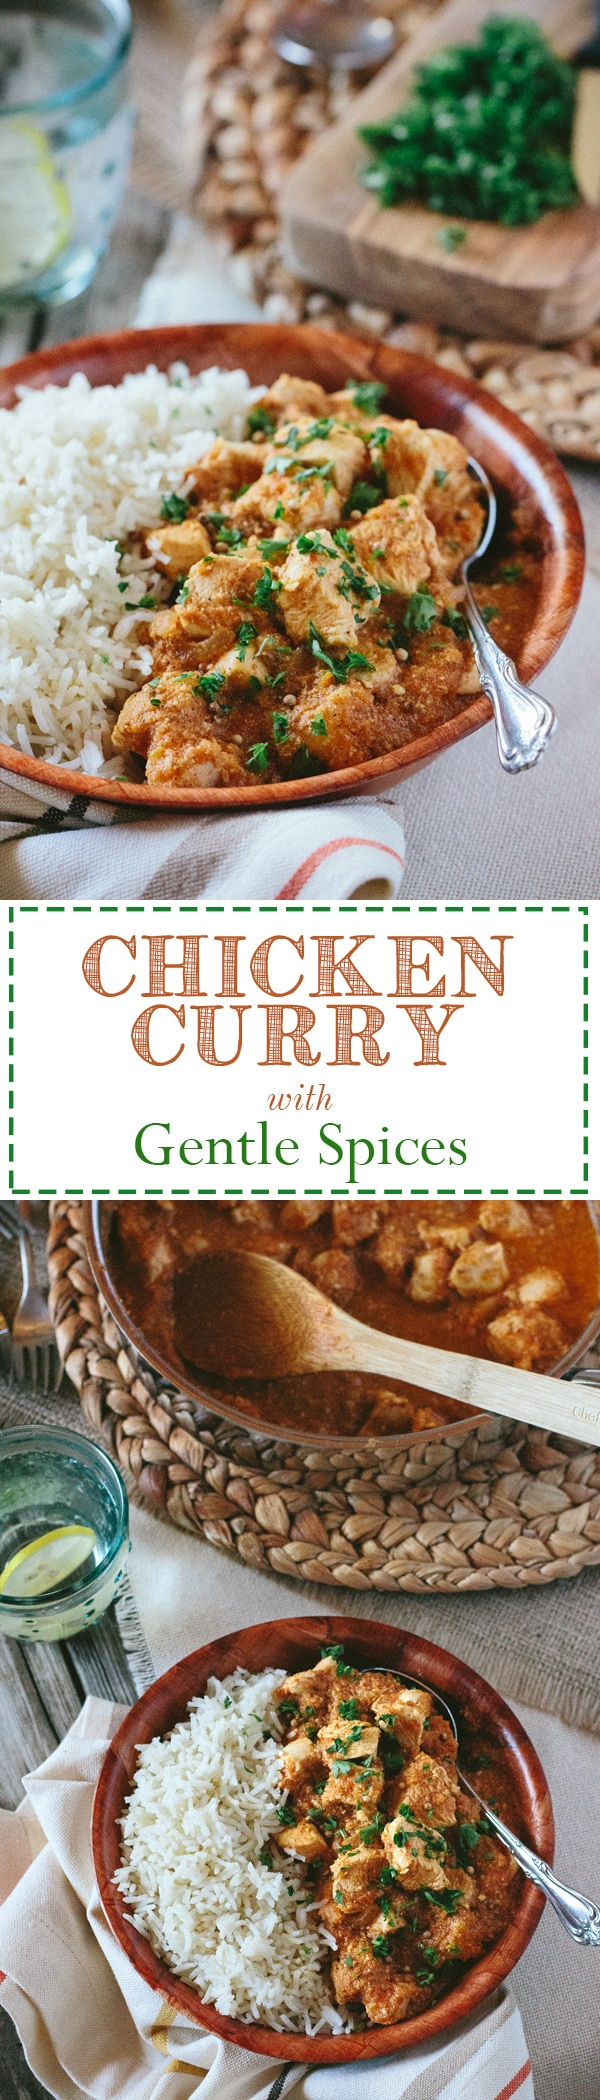 Chicken Curry with Gentle Spices: The most amazing Curry Chicken dish made with a secret technique I learned from a chef from Guyana at a Caribbean culinary event.